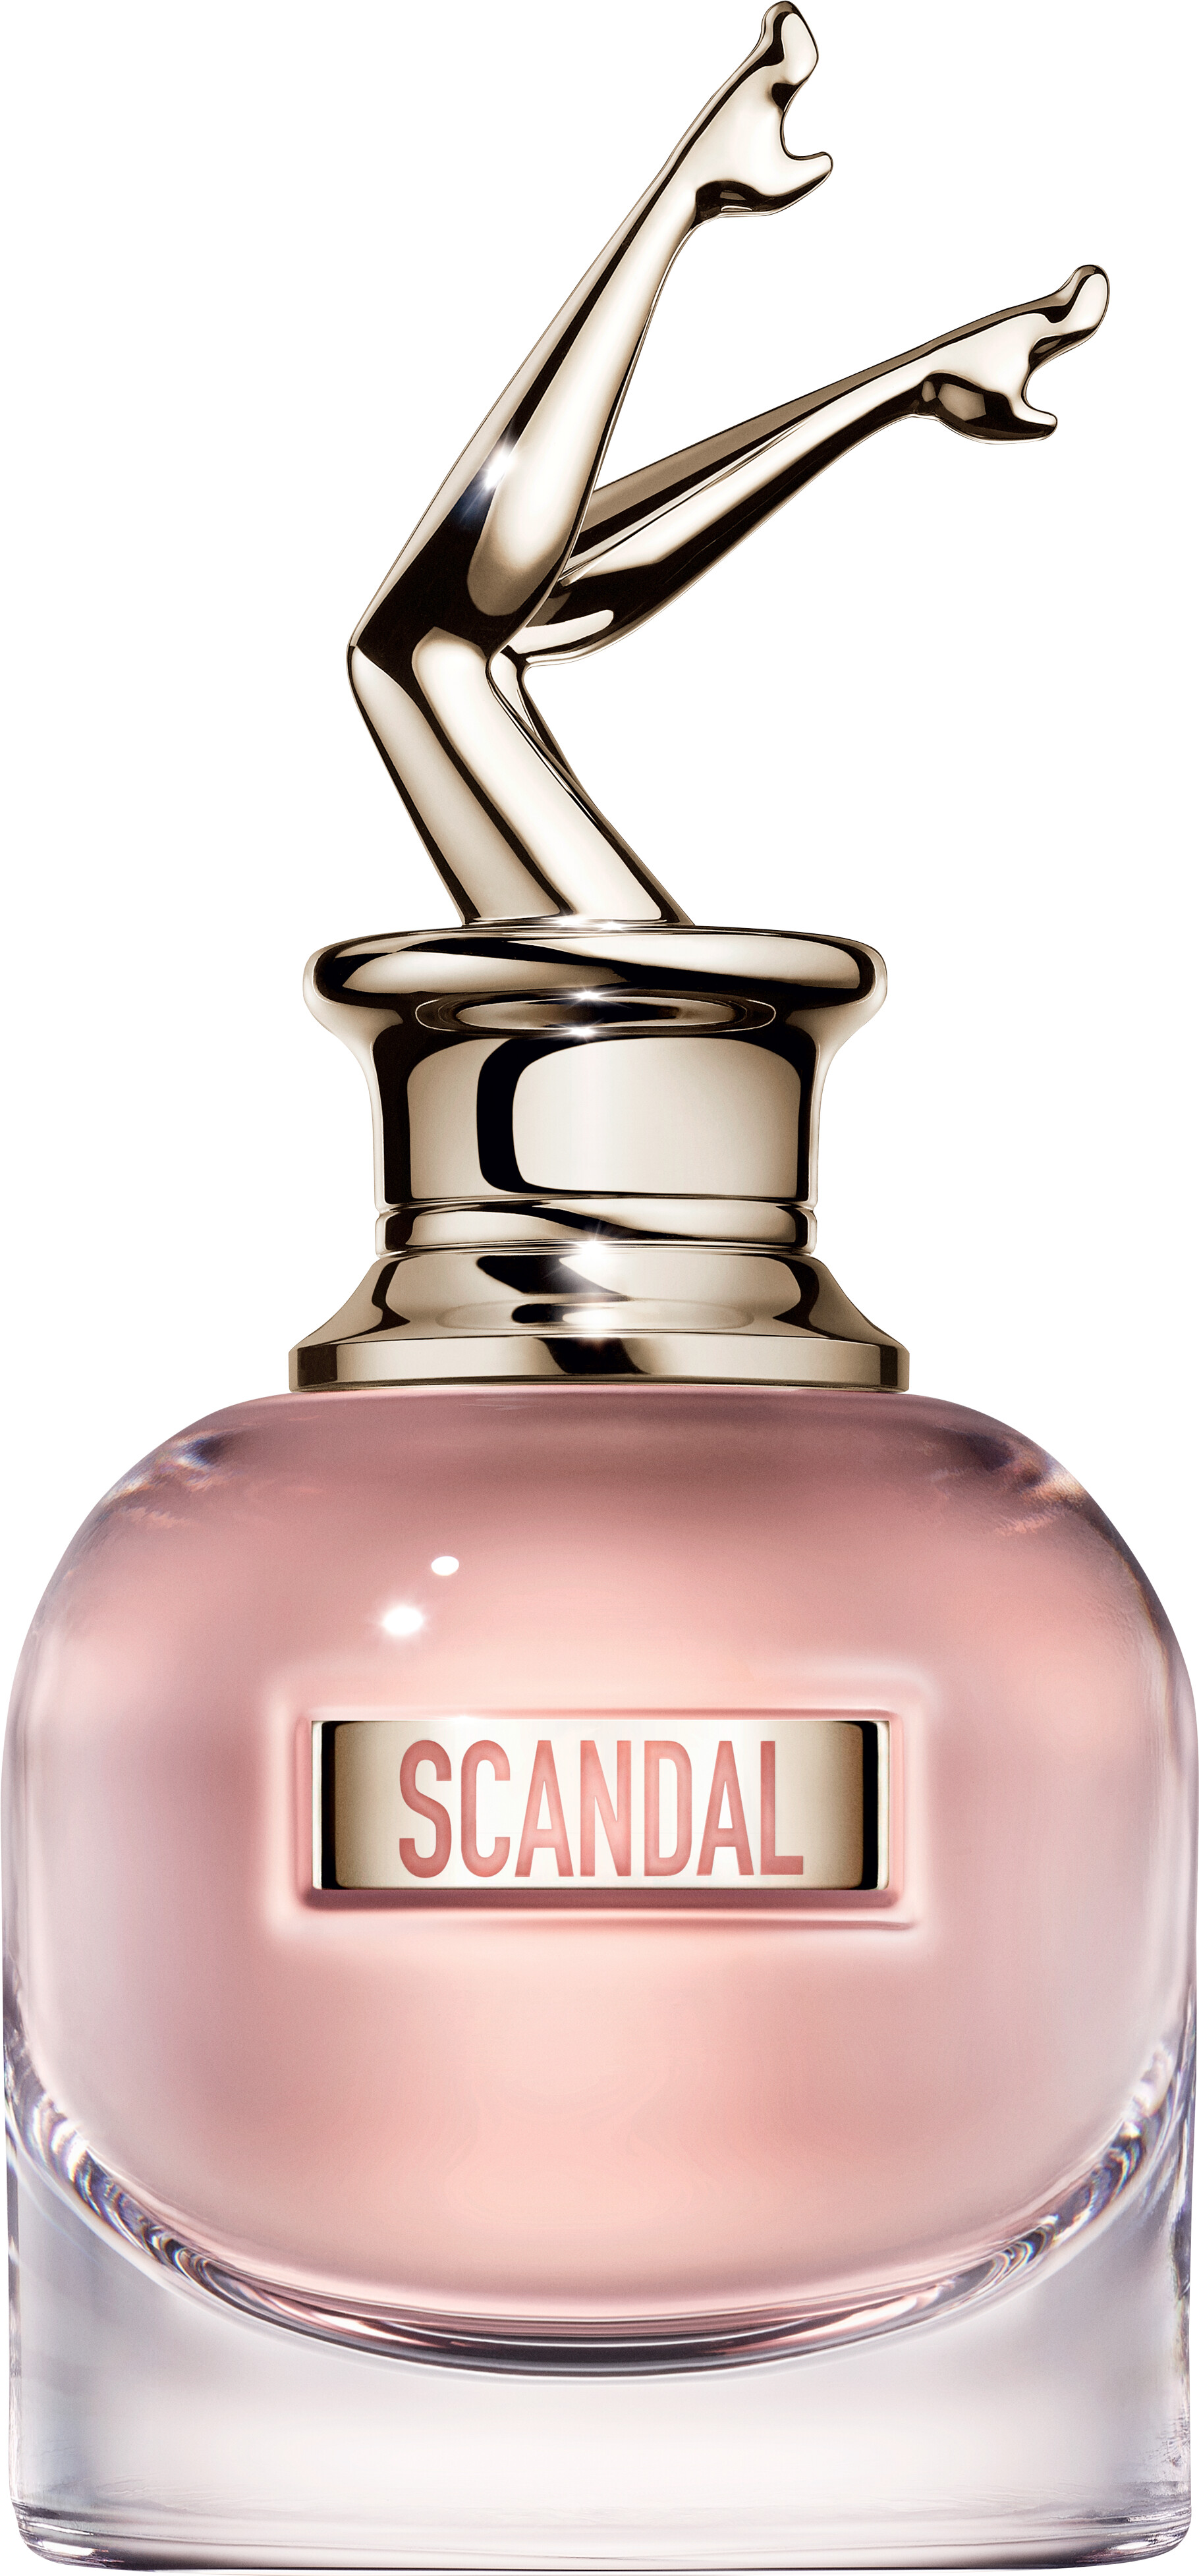 jean paul gaultier scandal eau de parfum spray. Black Bedroom Furniture Sets. Home Design Ideas